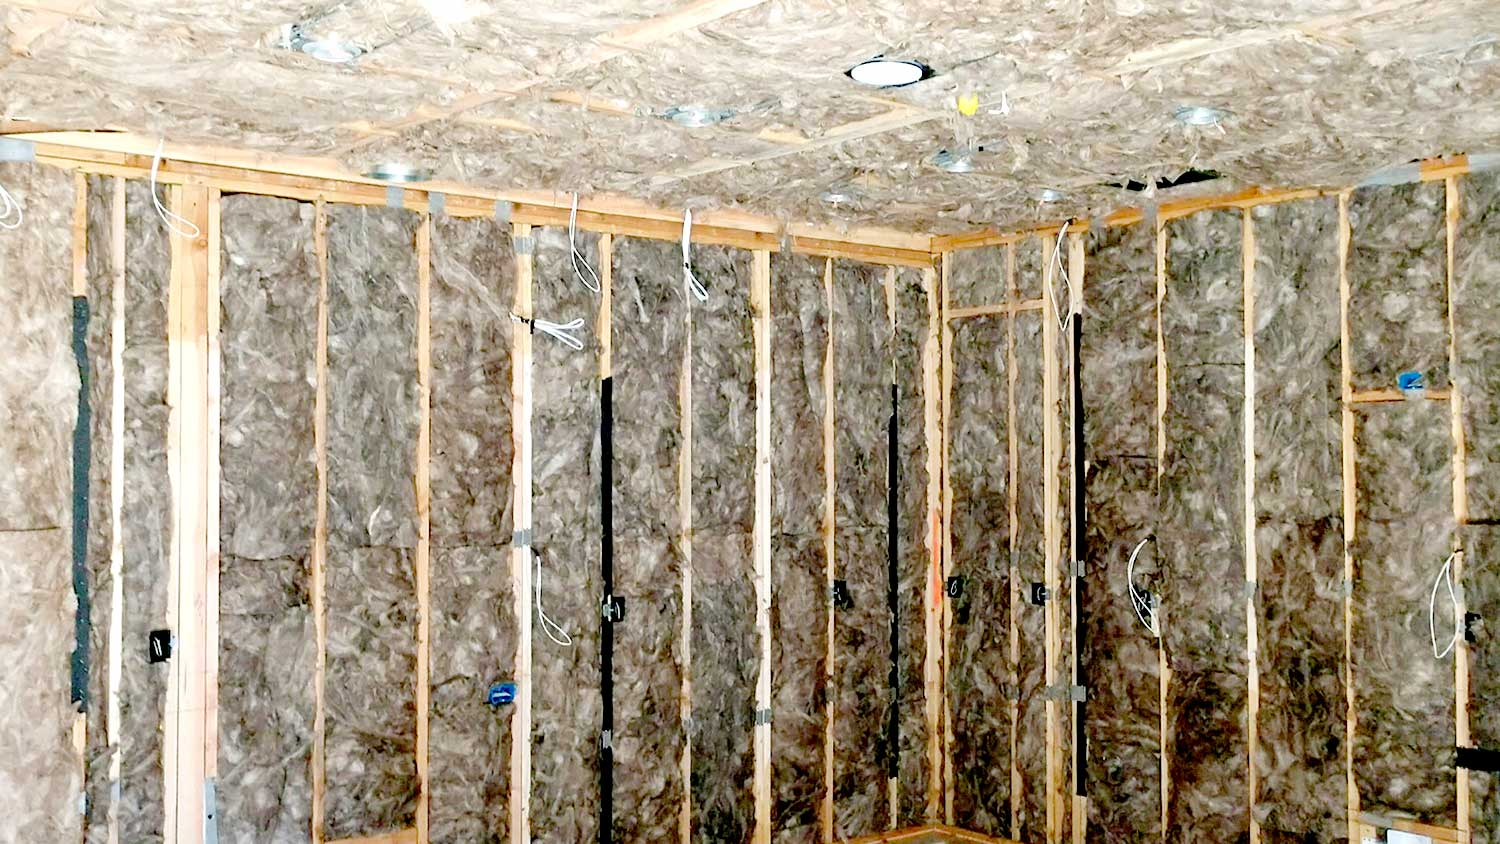 Insulation Solutions - Grass Valley - Sacramento - BIBS insulation 2